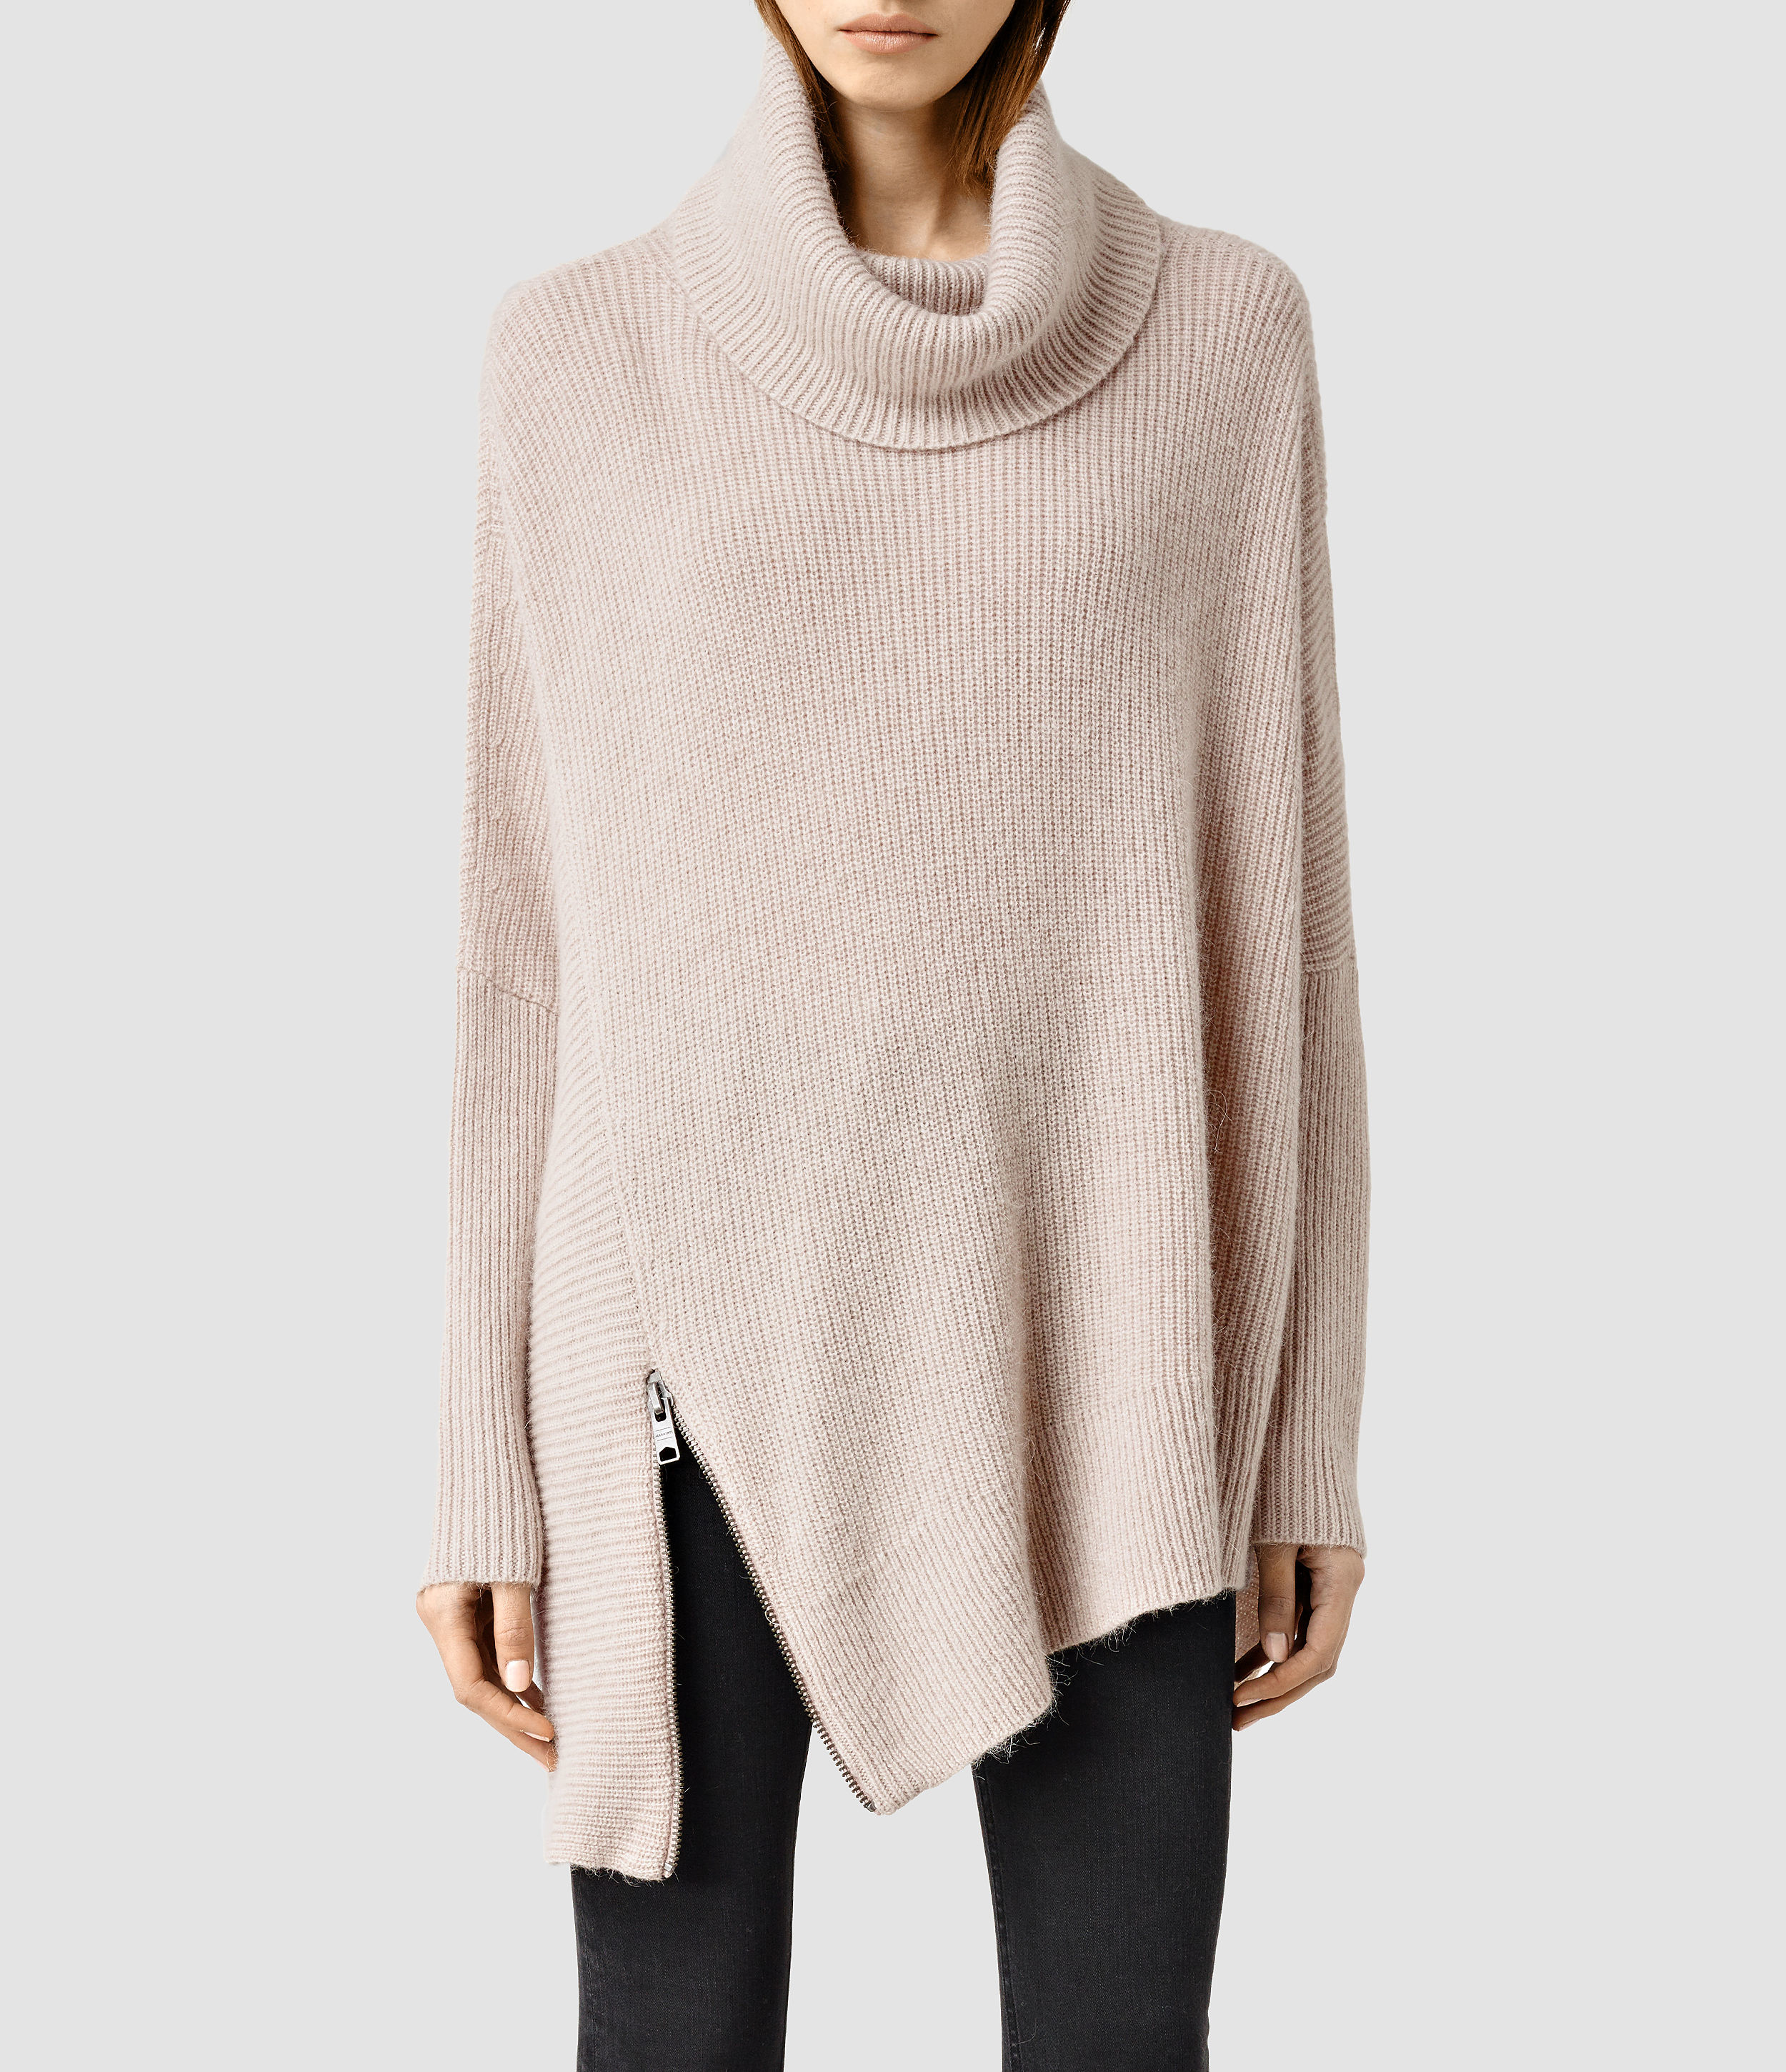 Buy Cheap New AllSaints Able Wool Cardigan Discount Largest Supplier Outlet Excellent x5j2QQG3v